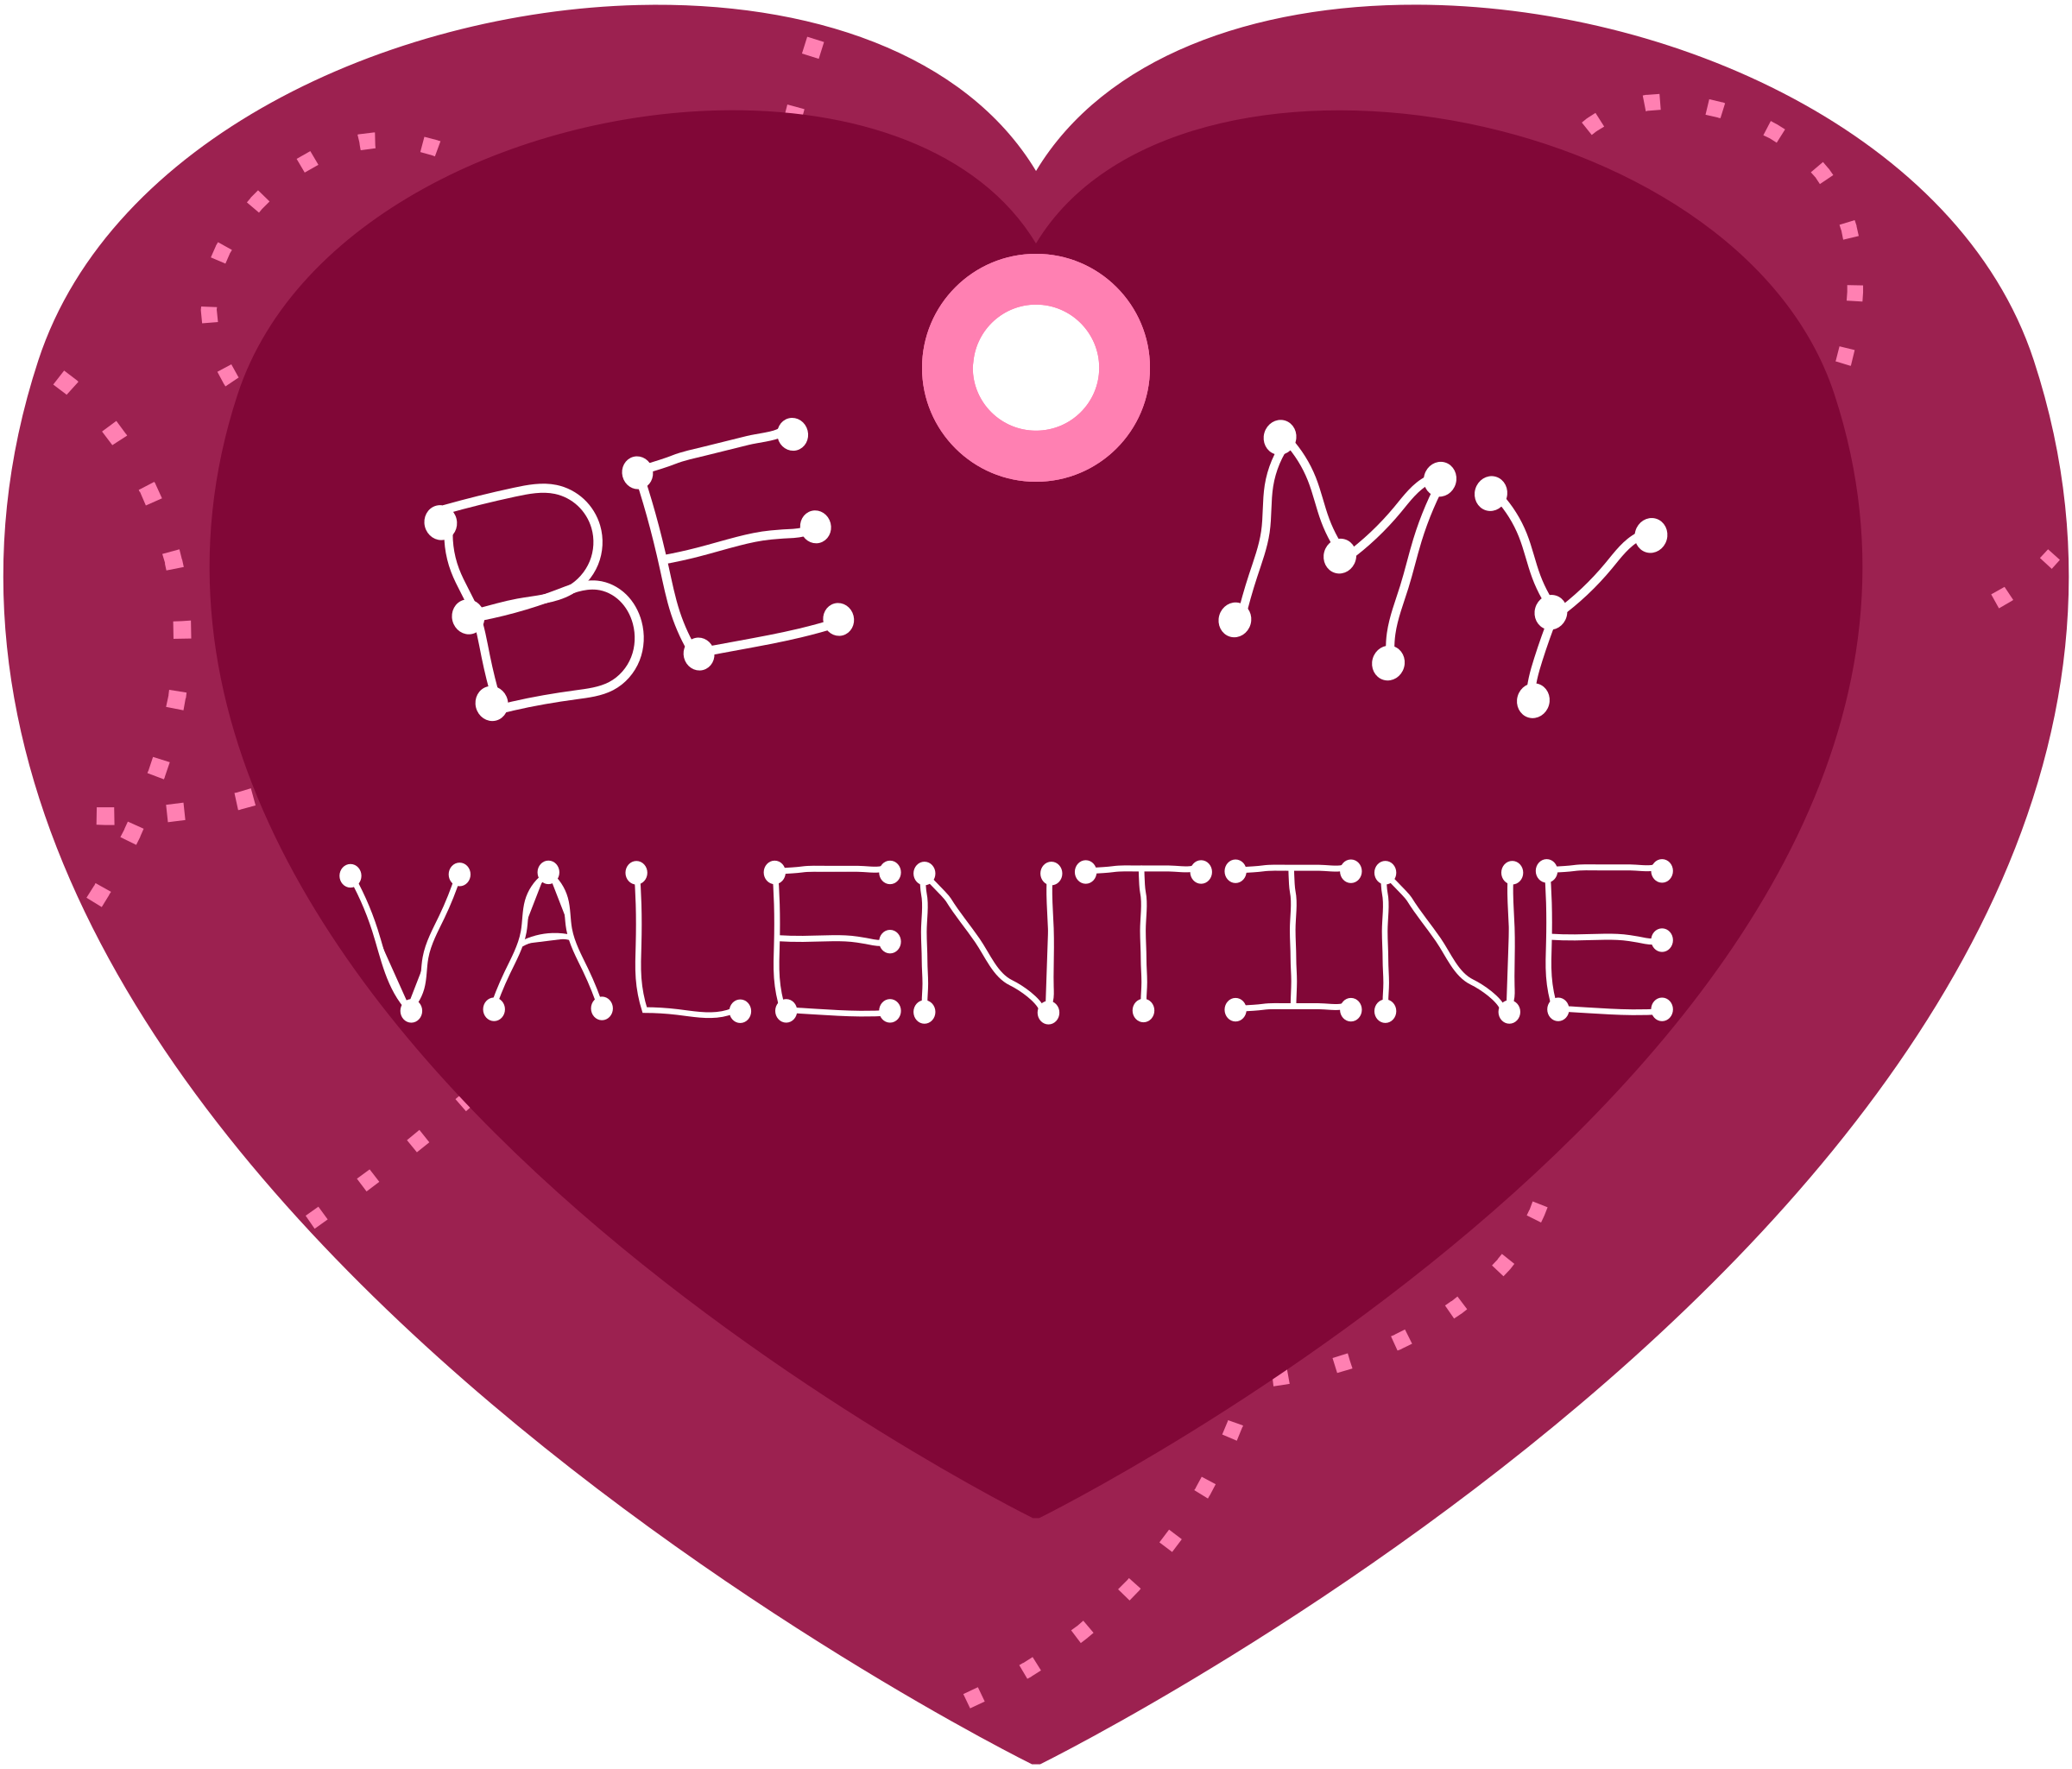 Clipart of a heart shape clip Clipart - Be My Valentine Heart Shaped Gift Tag clip